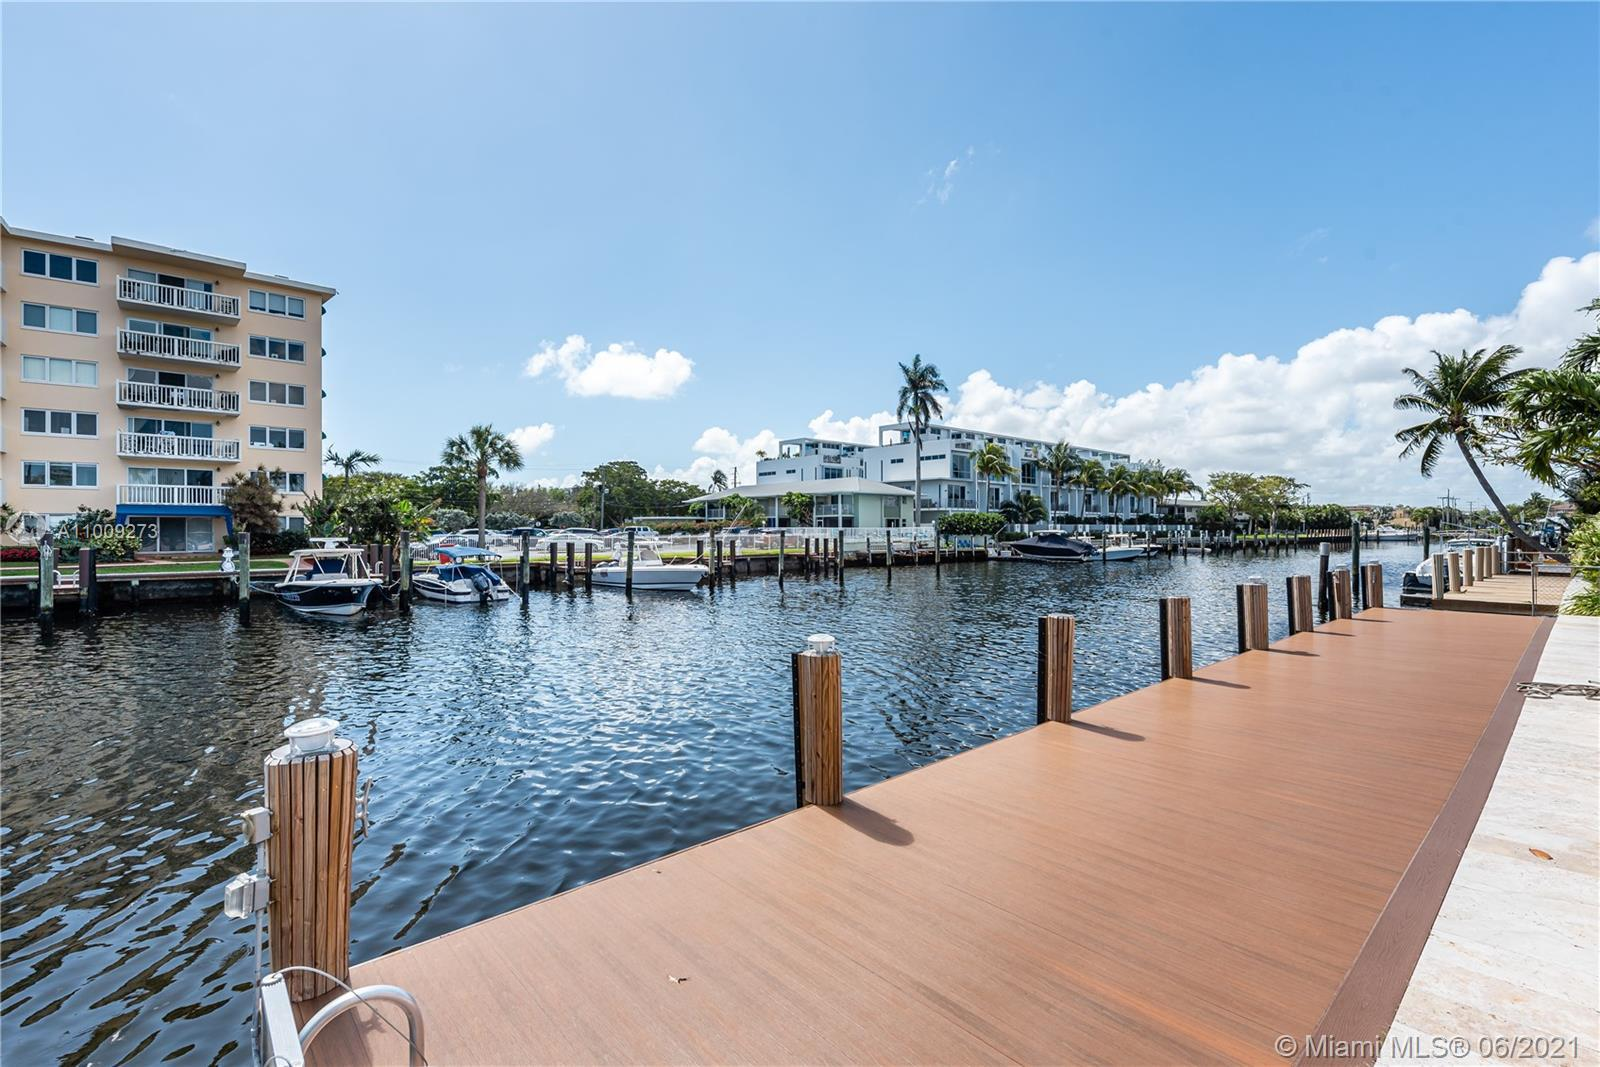 Tenant in place paying $6,700 per month until April 2022. Pompano Beach gem is the perfect dream hom